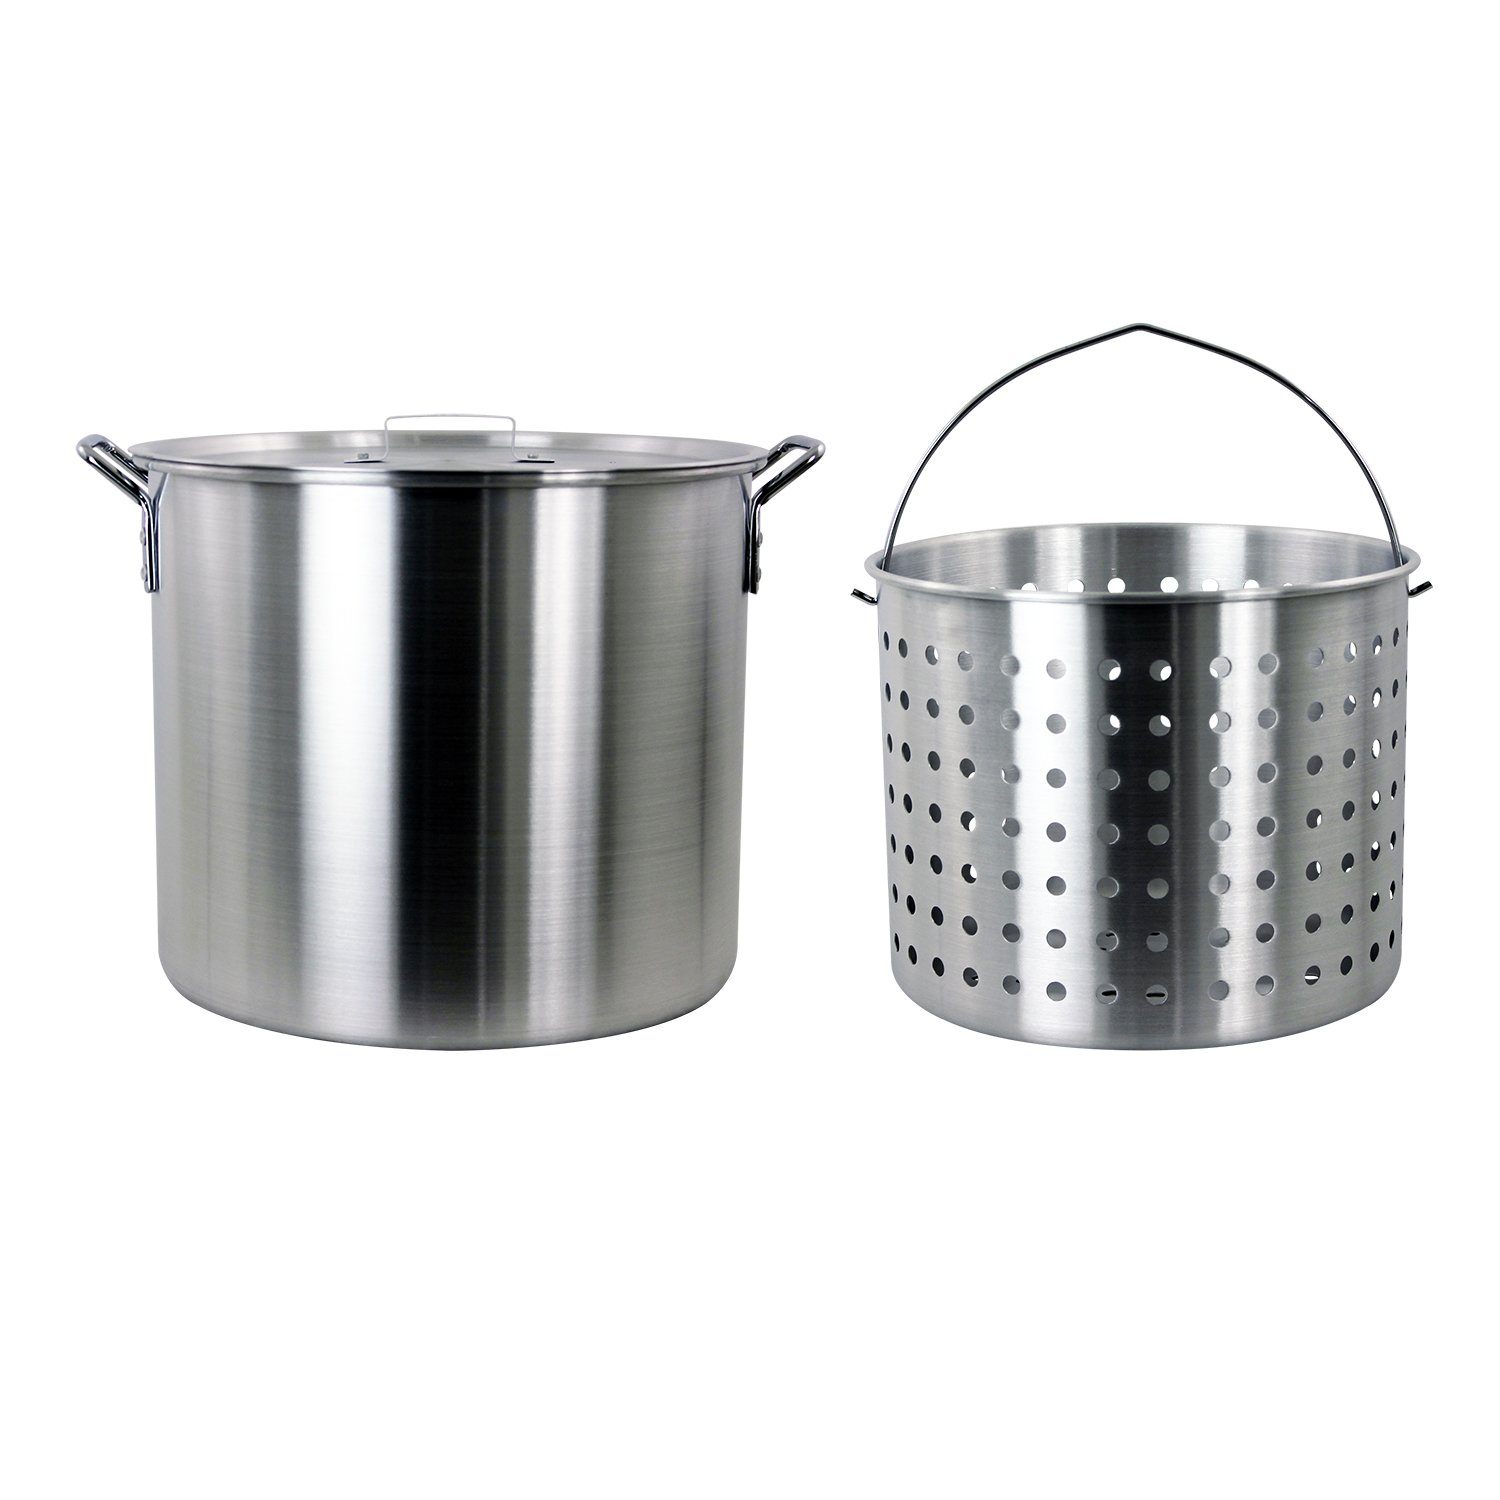 CHARD ASP42, Aluminum Stock Pot and Perforated Strainer Basket Set, 42 quart